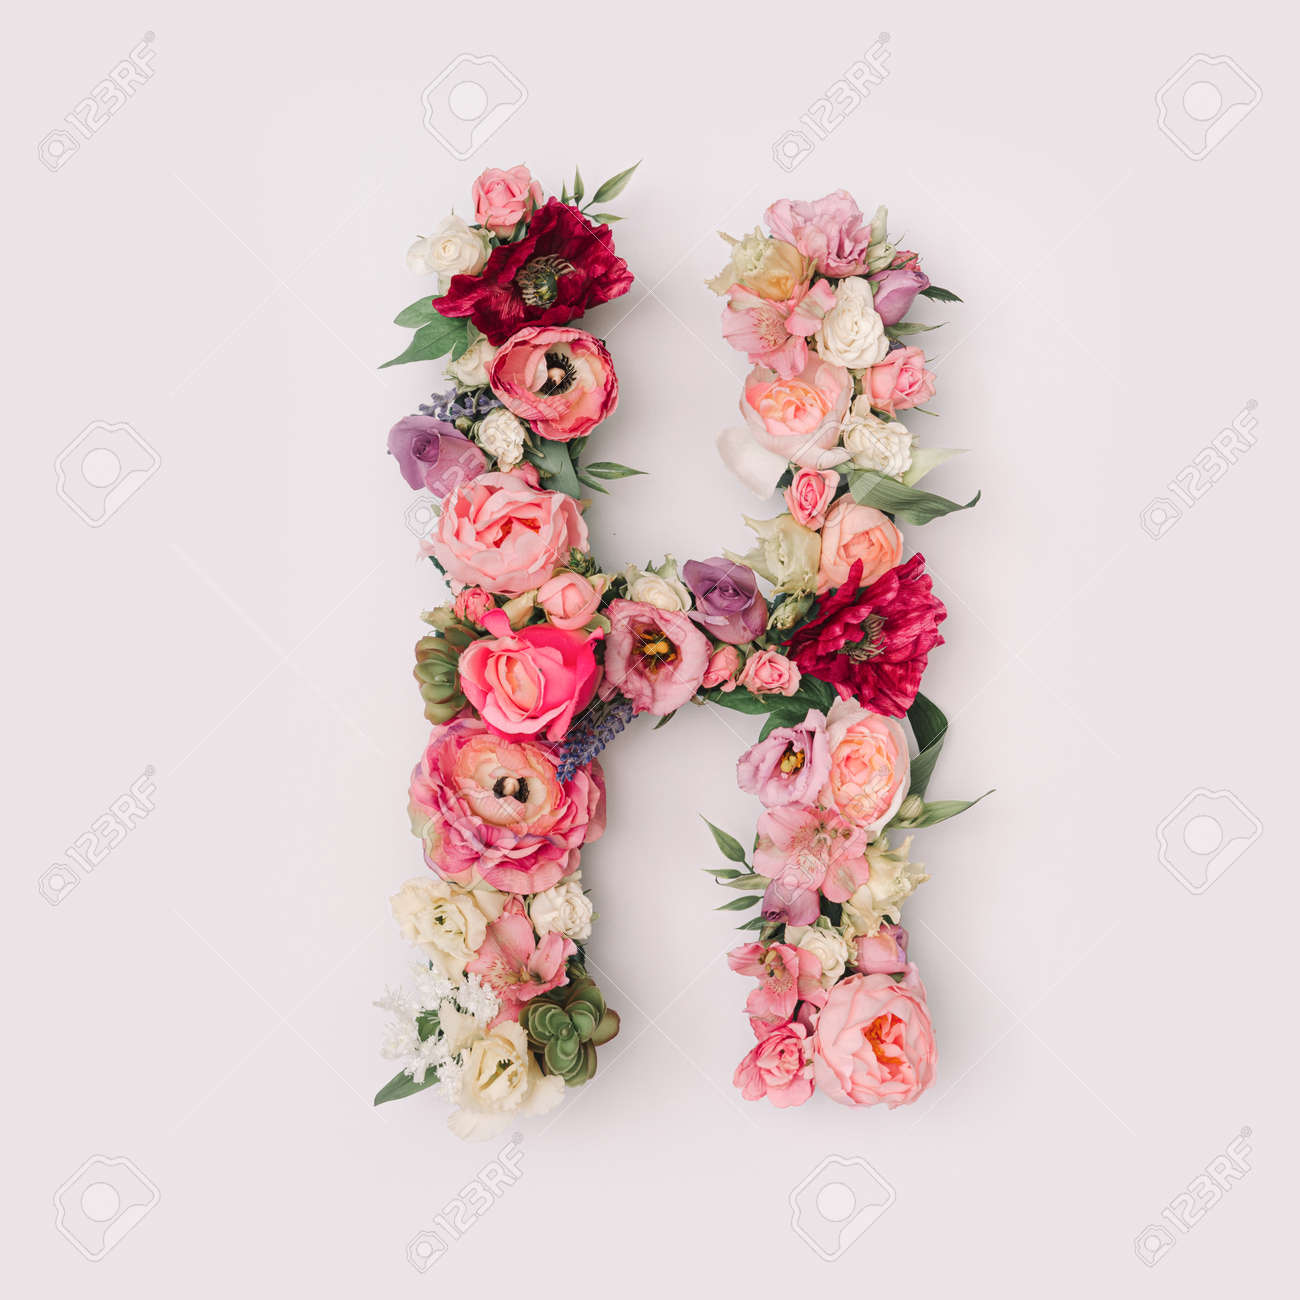 Letter H made of real natural flowers and leaves. Flower font concept. Unique collection of letters and numbers. Spring, summer and valentines creative idea. - 163345985